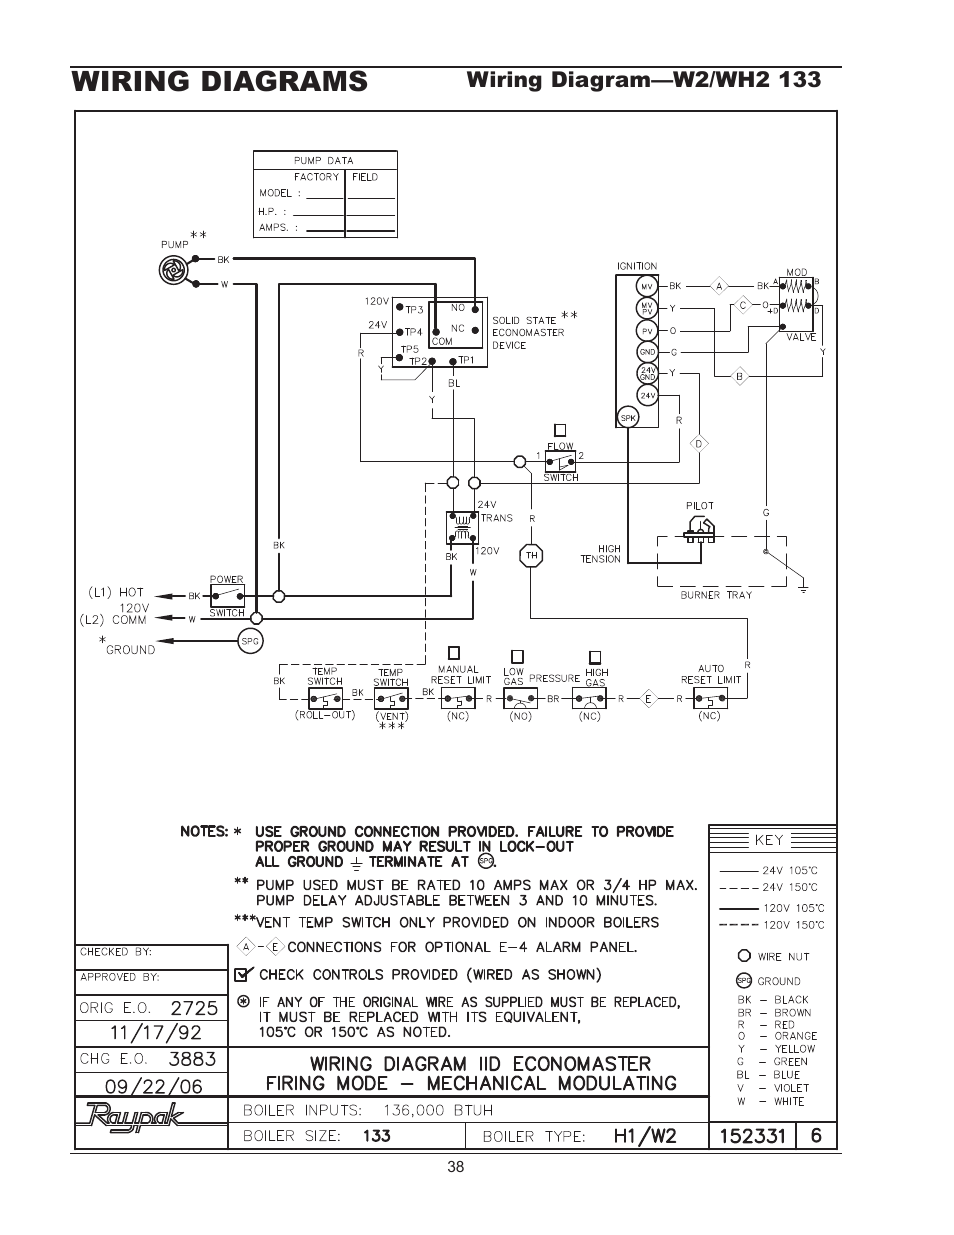 raypak 1334001 page38 wiring diagrams, wiring diagram wh1 0181 0261 raypak 1334001 raypak 2100 wiring diagram at gsmx.co